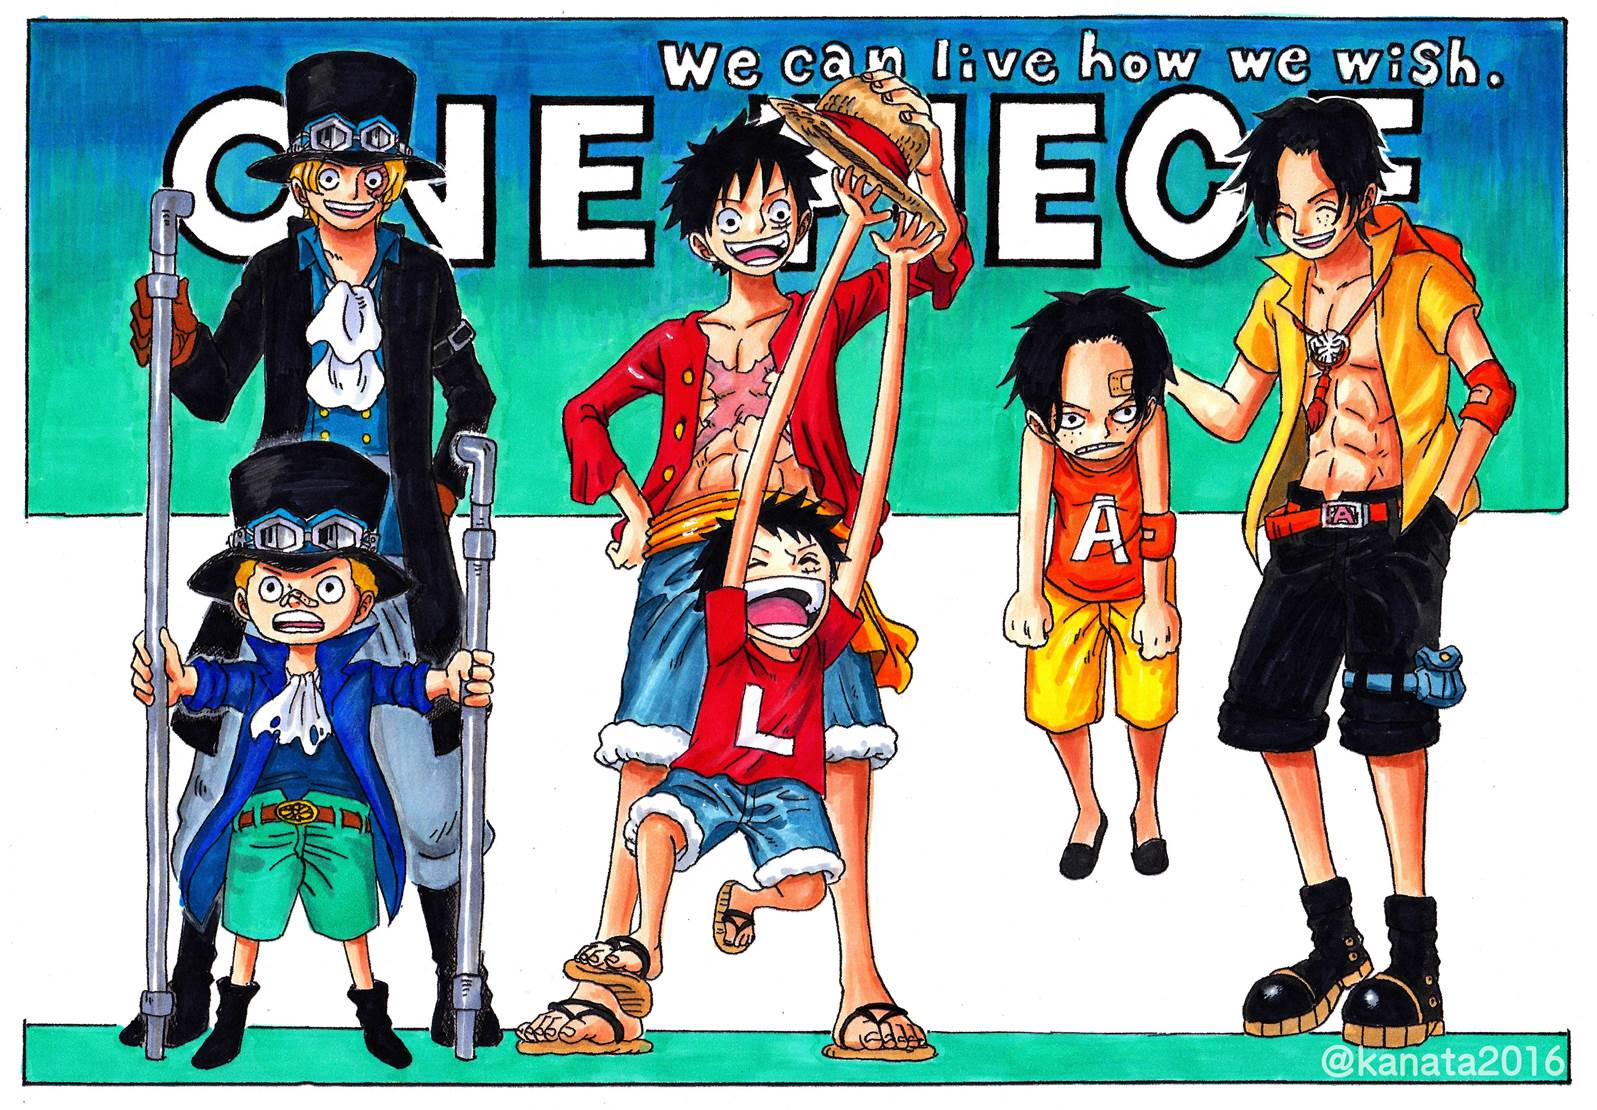 Sabo Luffy Ace Generation One Piece Wallpaper